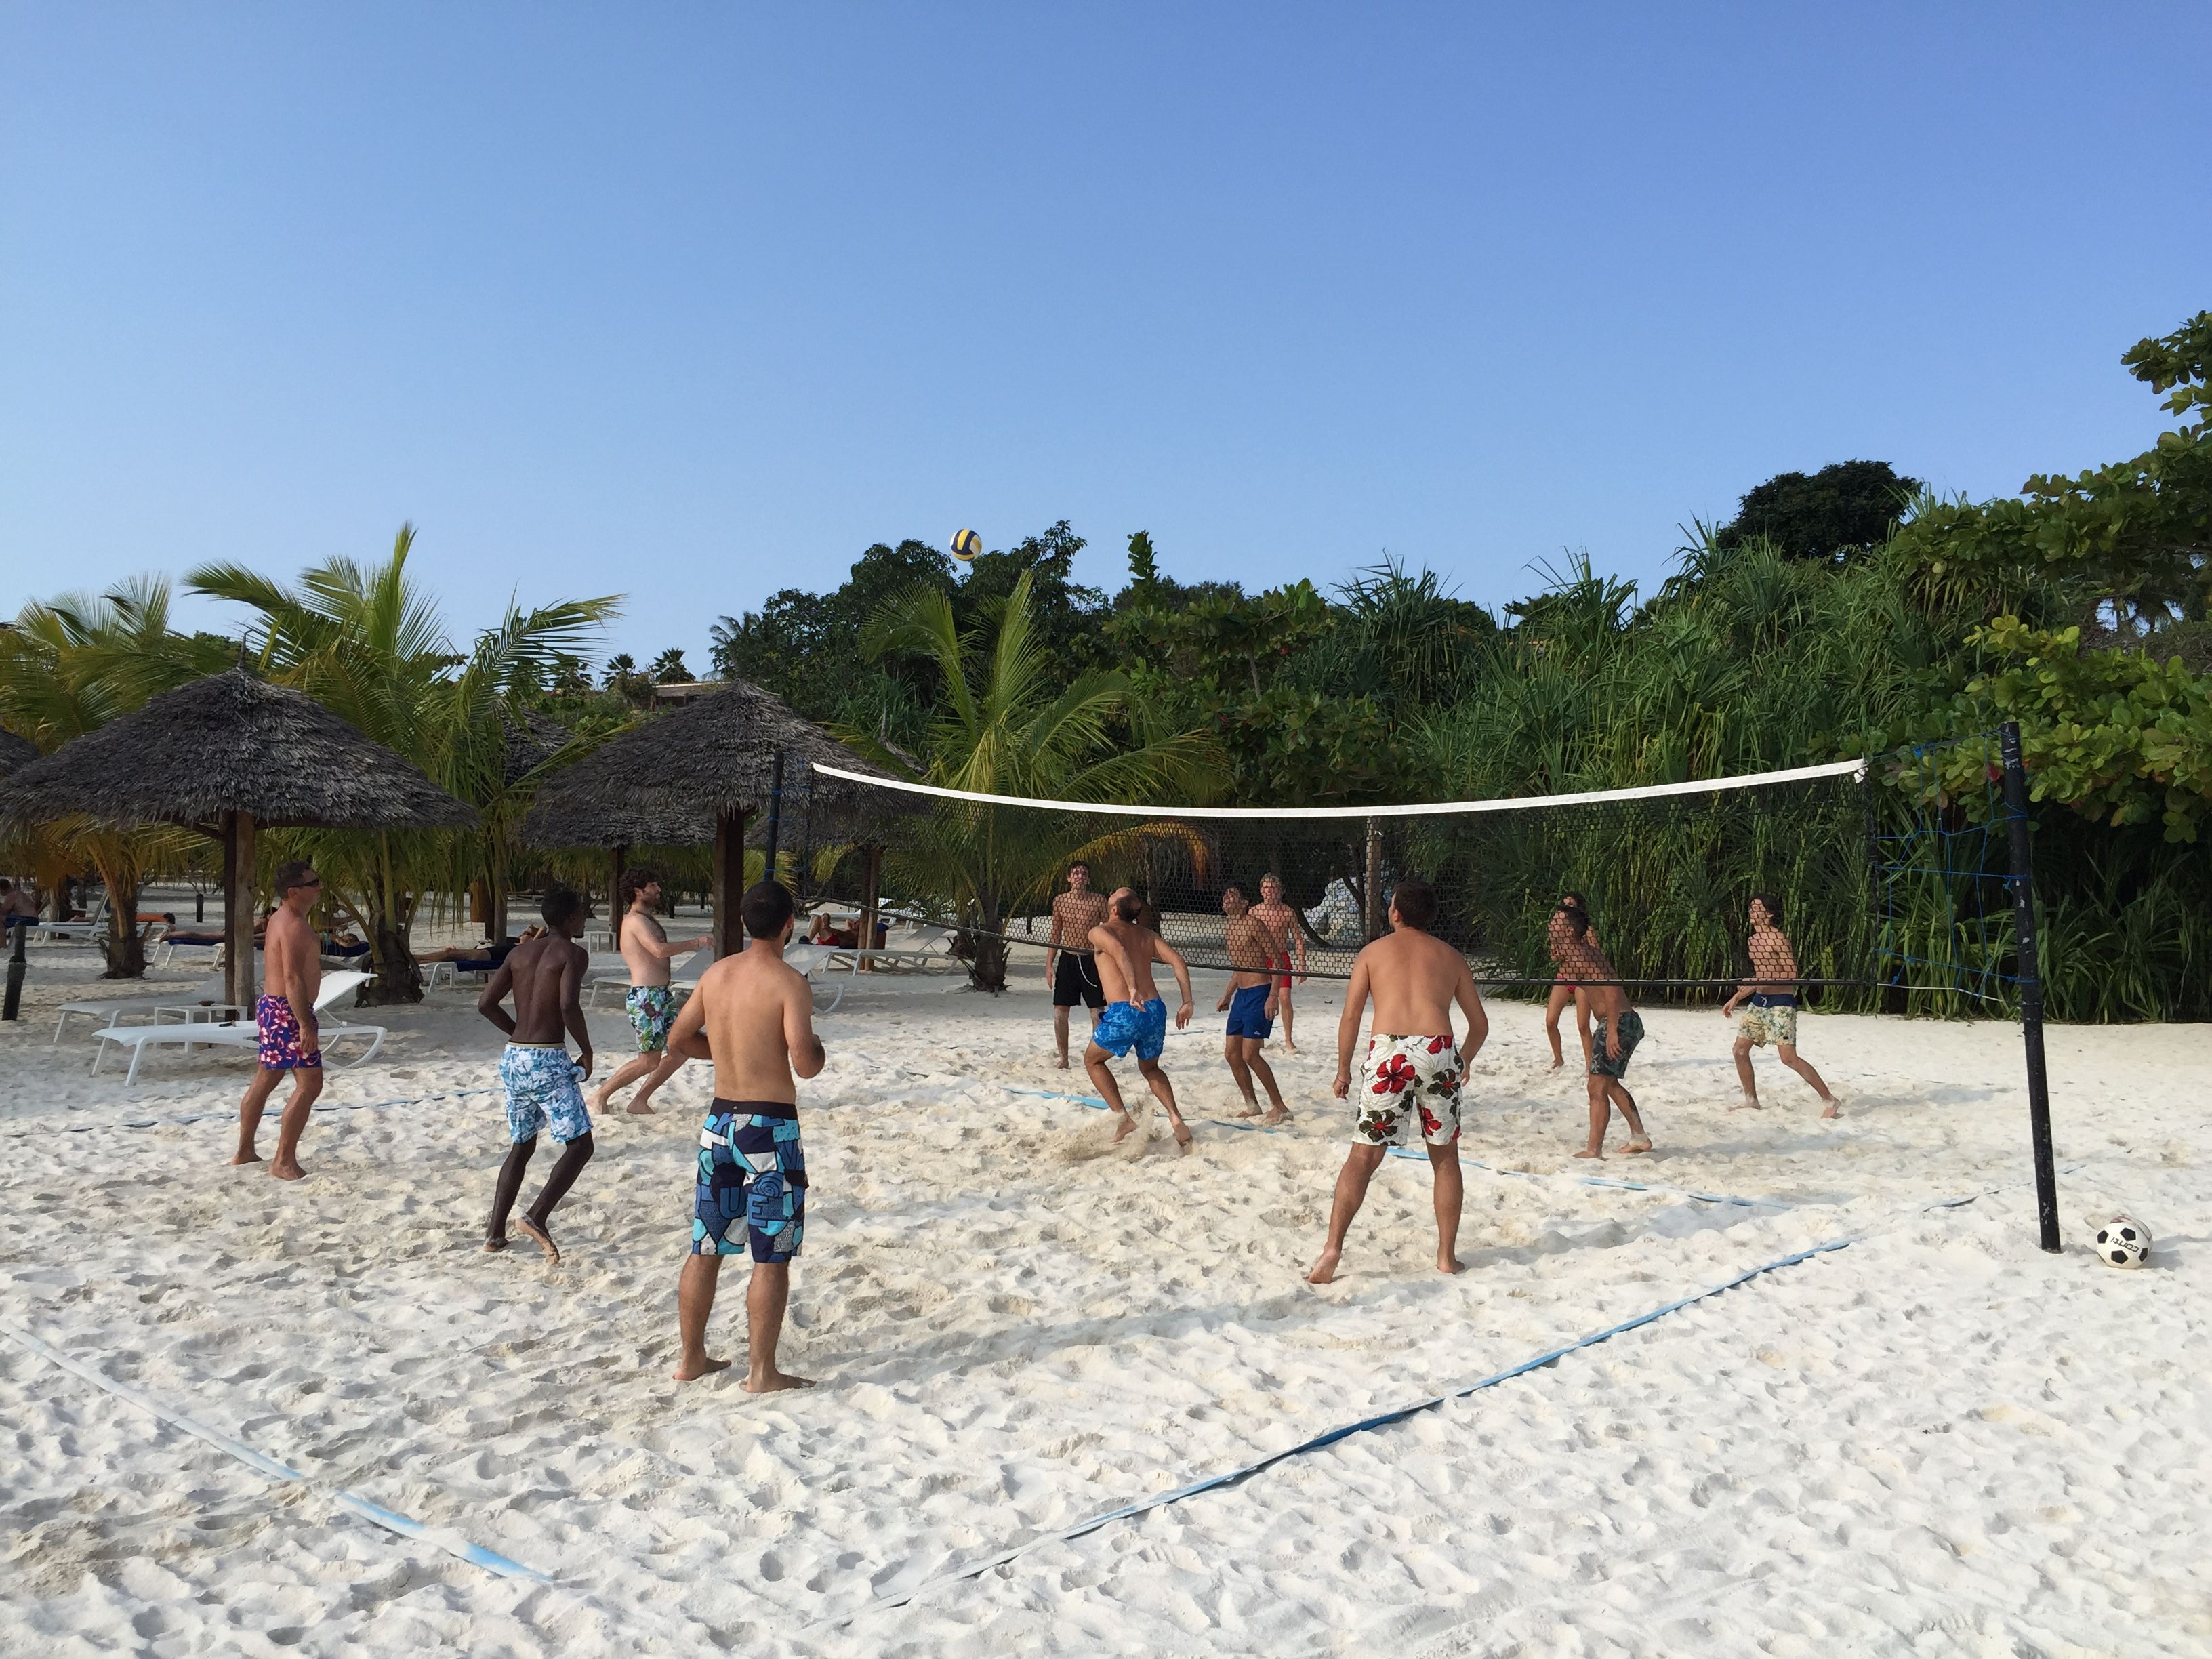 Are You Ready For An Exciting Beach Volley Match On The White Beach At Diamonds La Gemma Dell Est Gemme